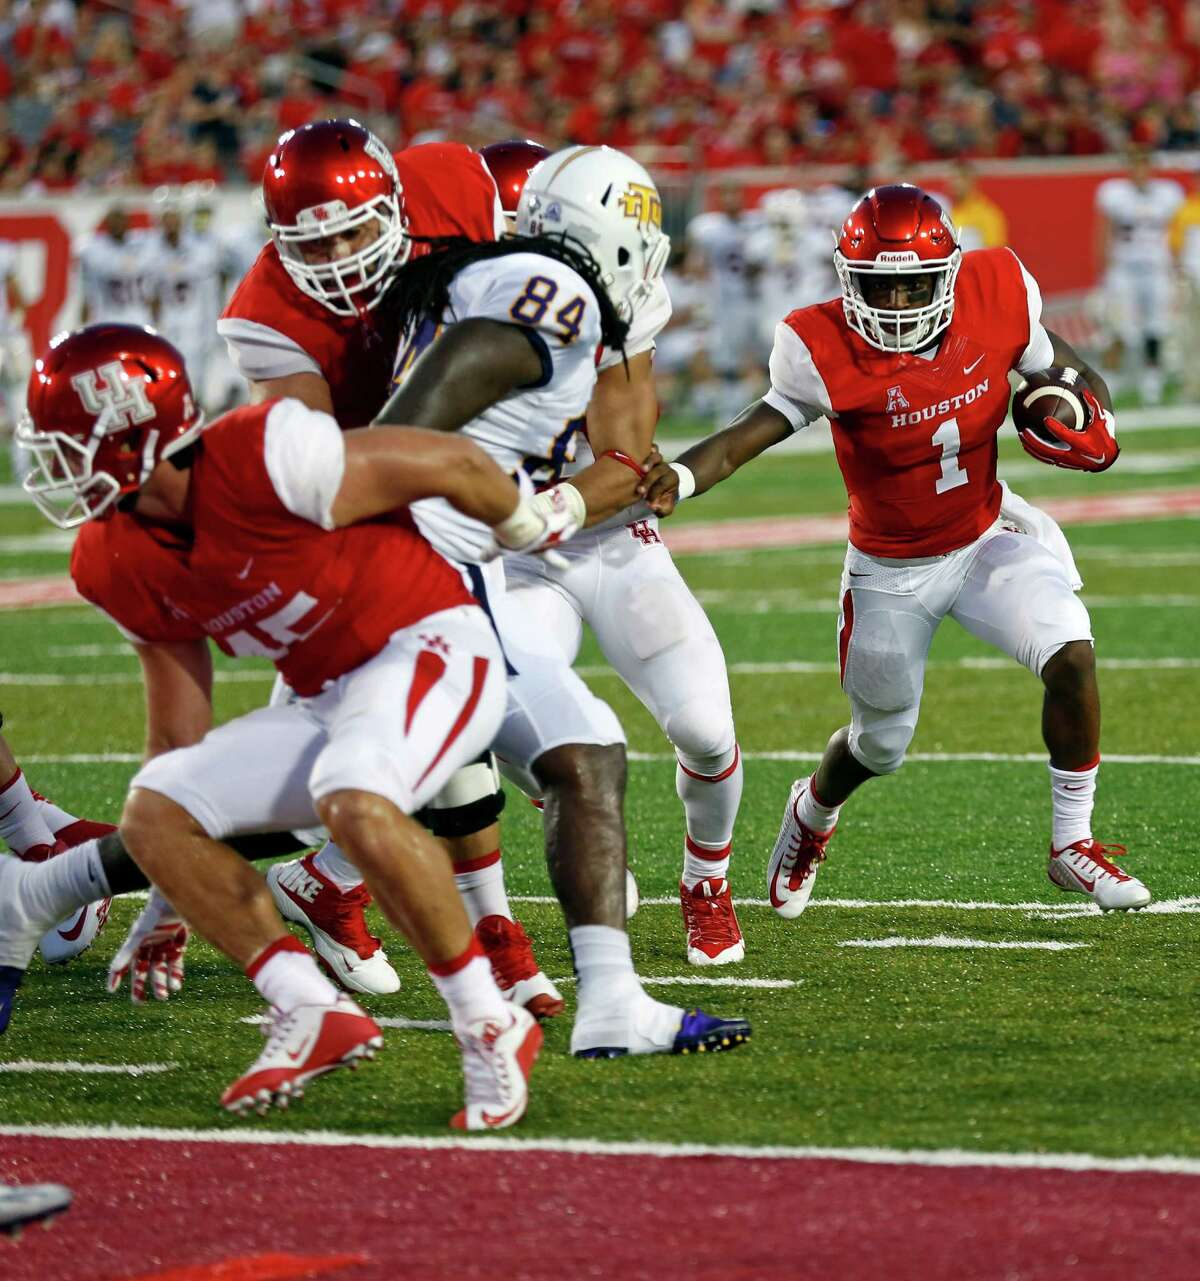 UH's Greg Ward Jr. (1) cruises in for the second Cougars TD against Tennessee Tech on Saturday, Sept. 5, 2015.